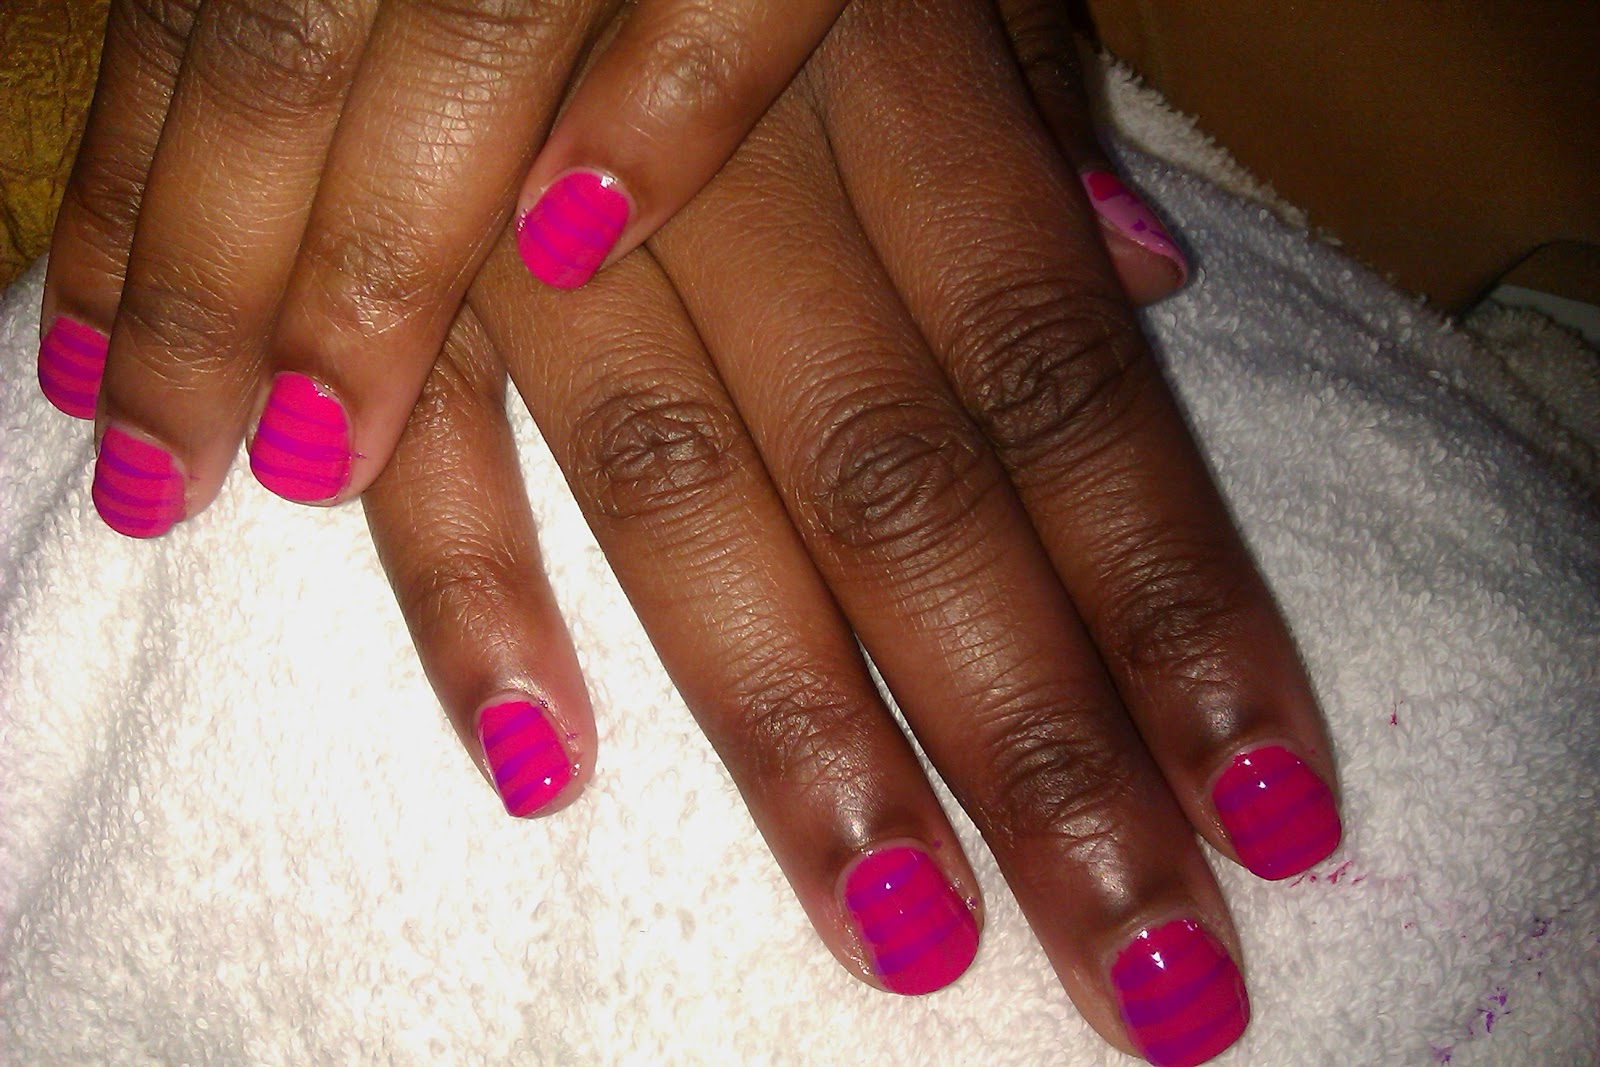 Food & Lacquer Too: Wow... That Curse Aint No Joke! Lol...